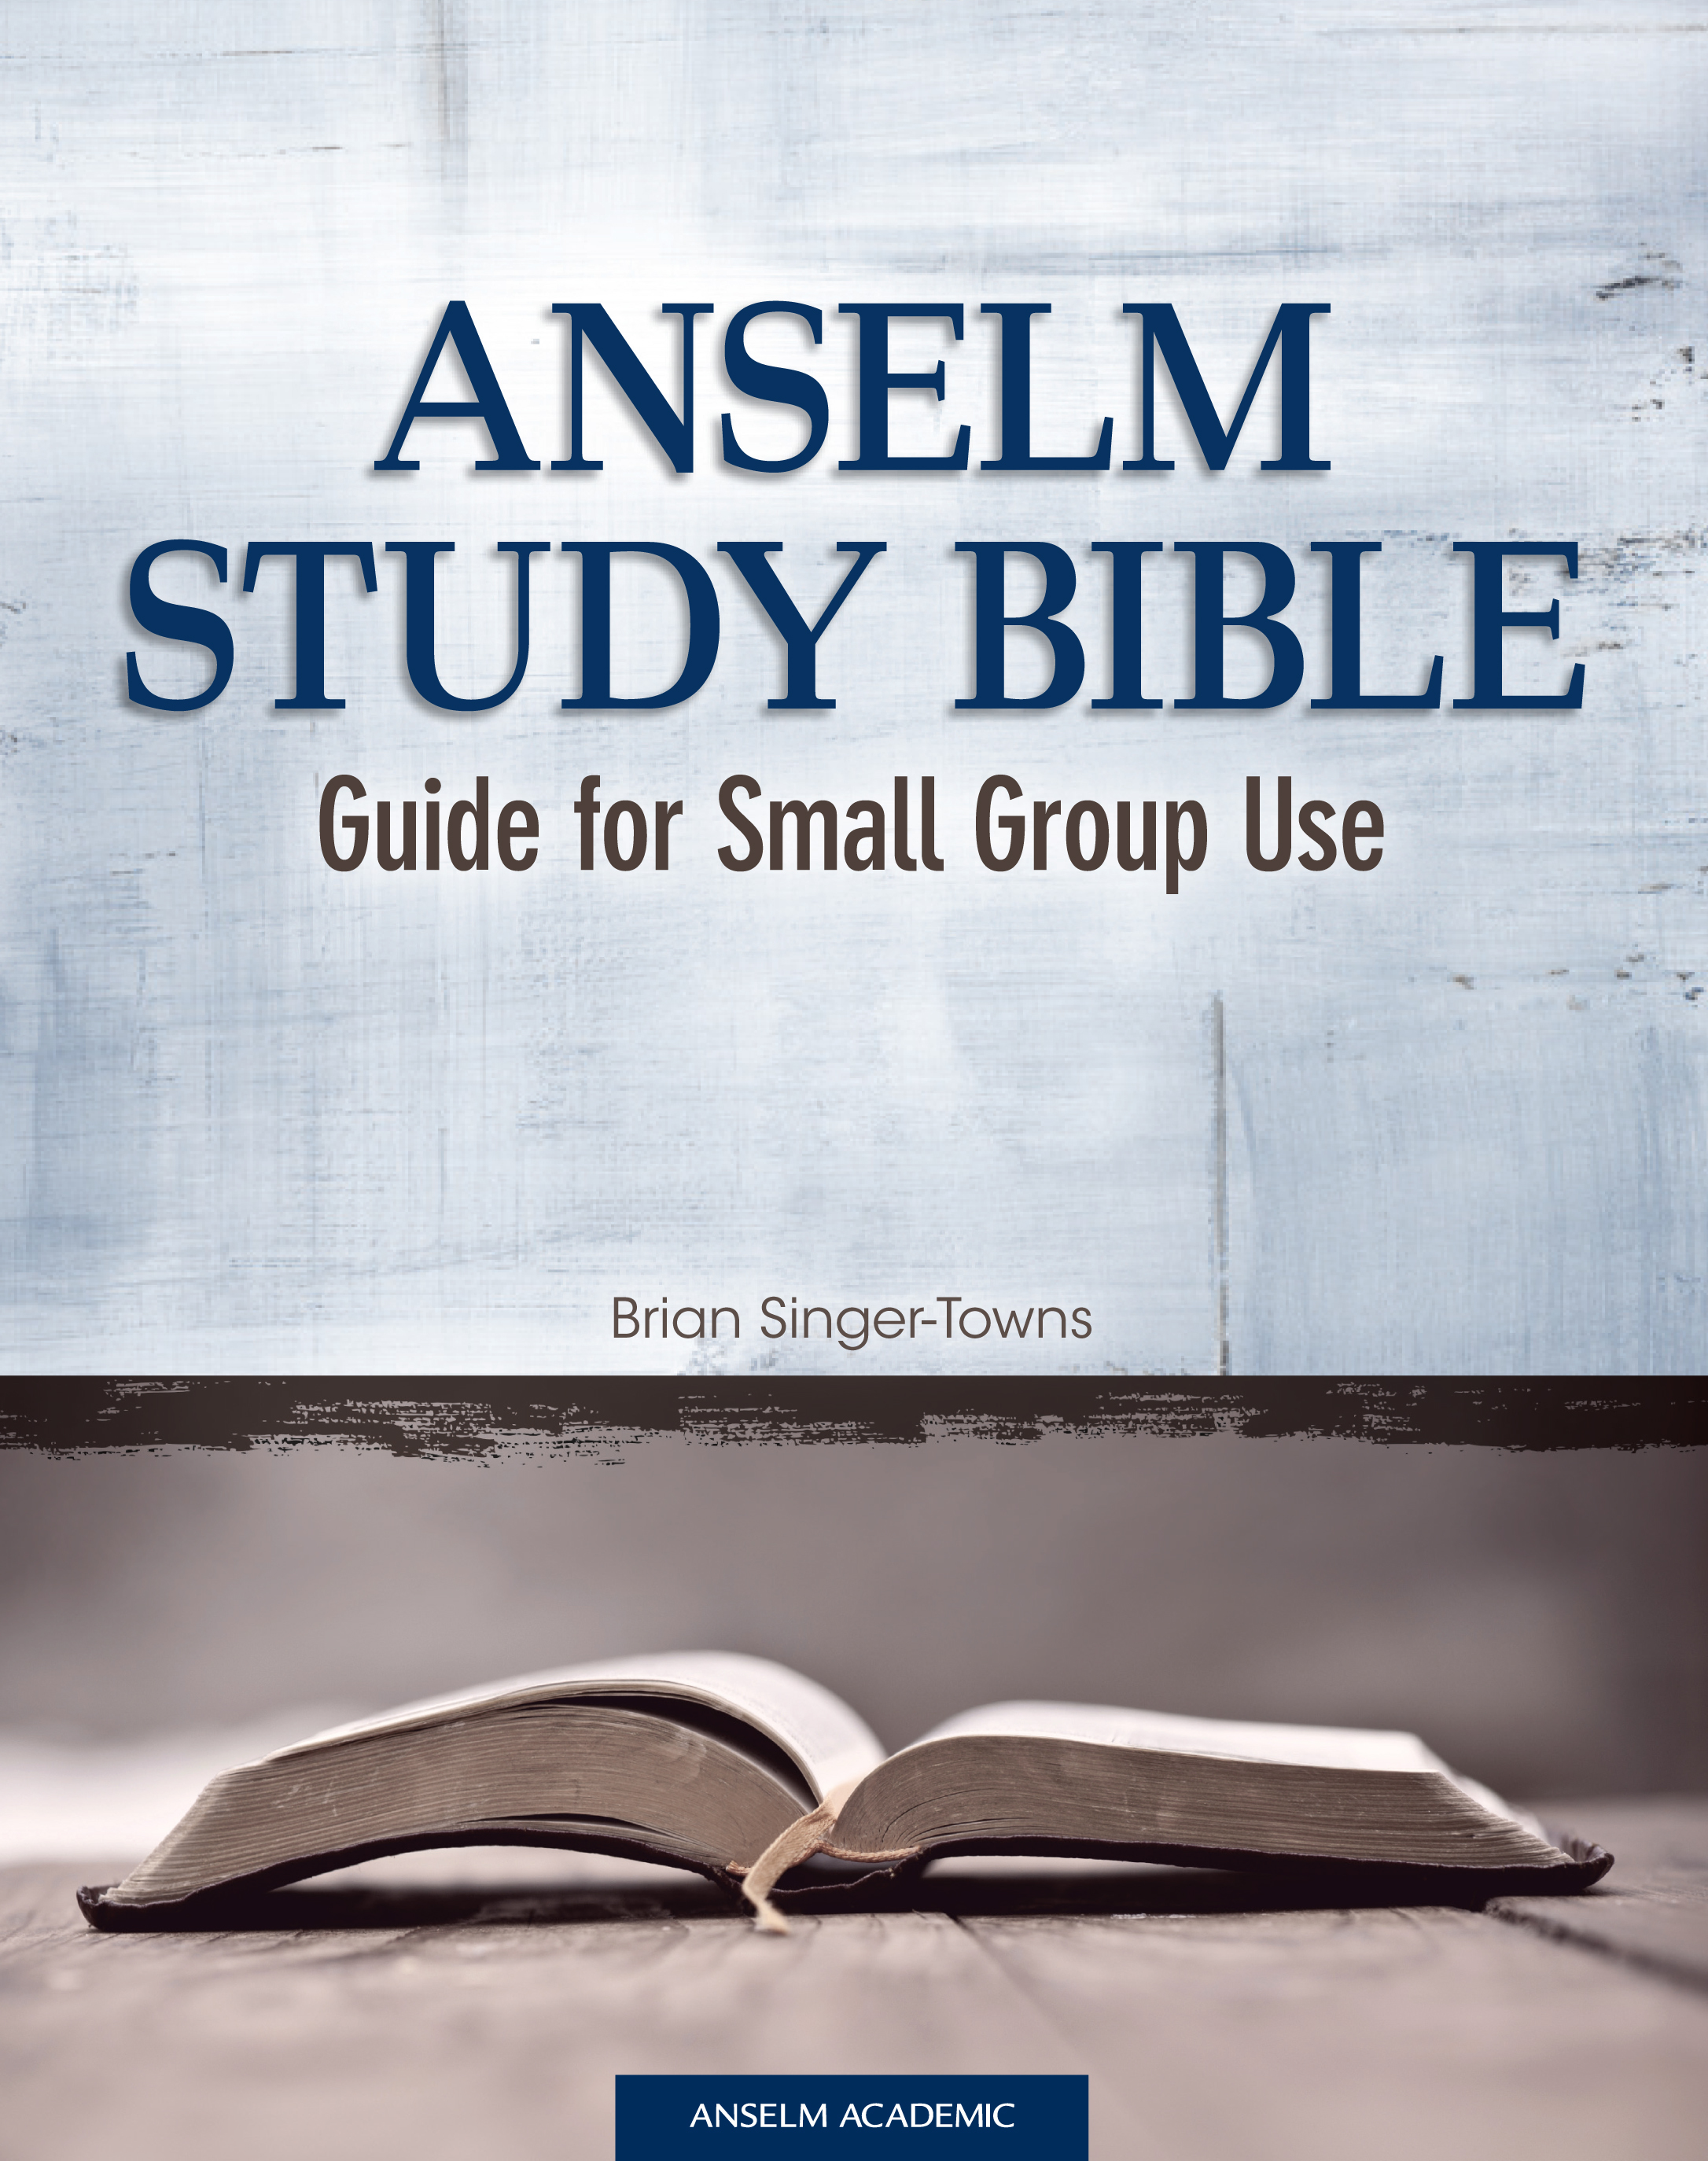 Anselm Study Bible Guide for Small Group Use